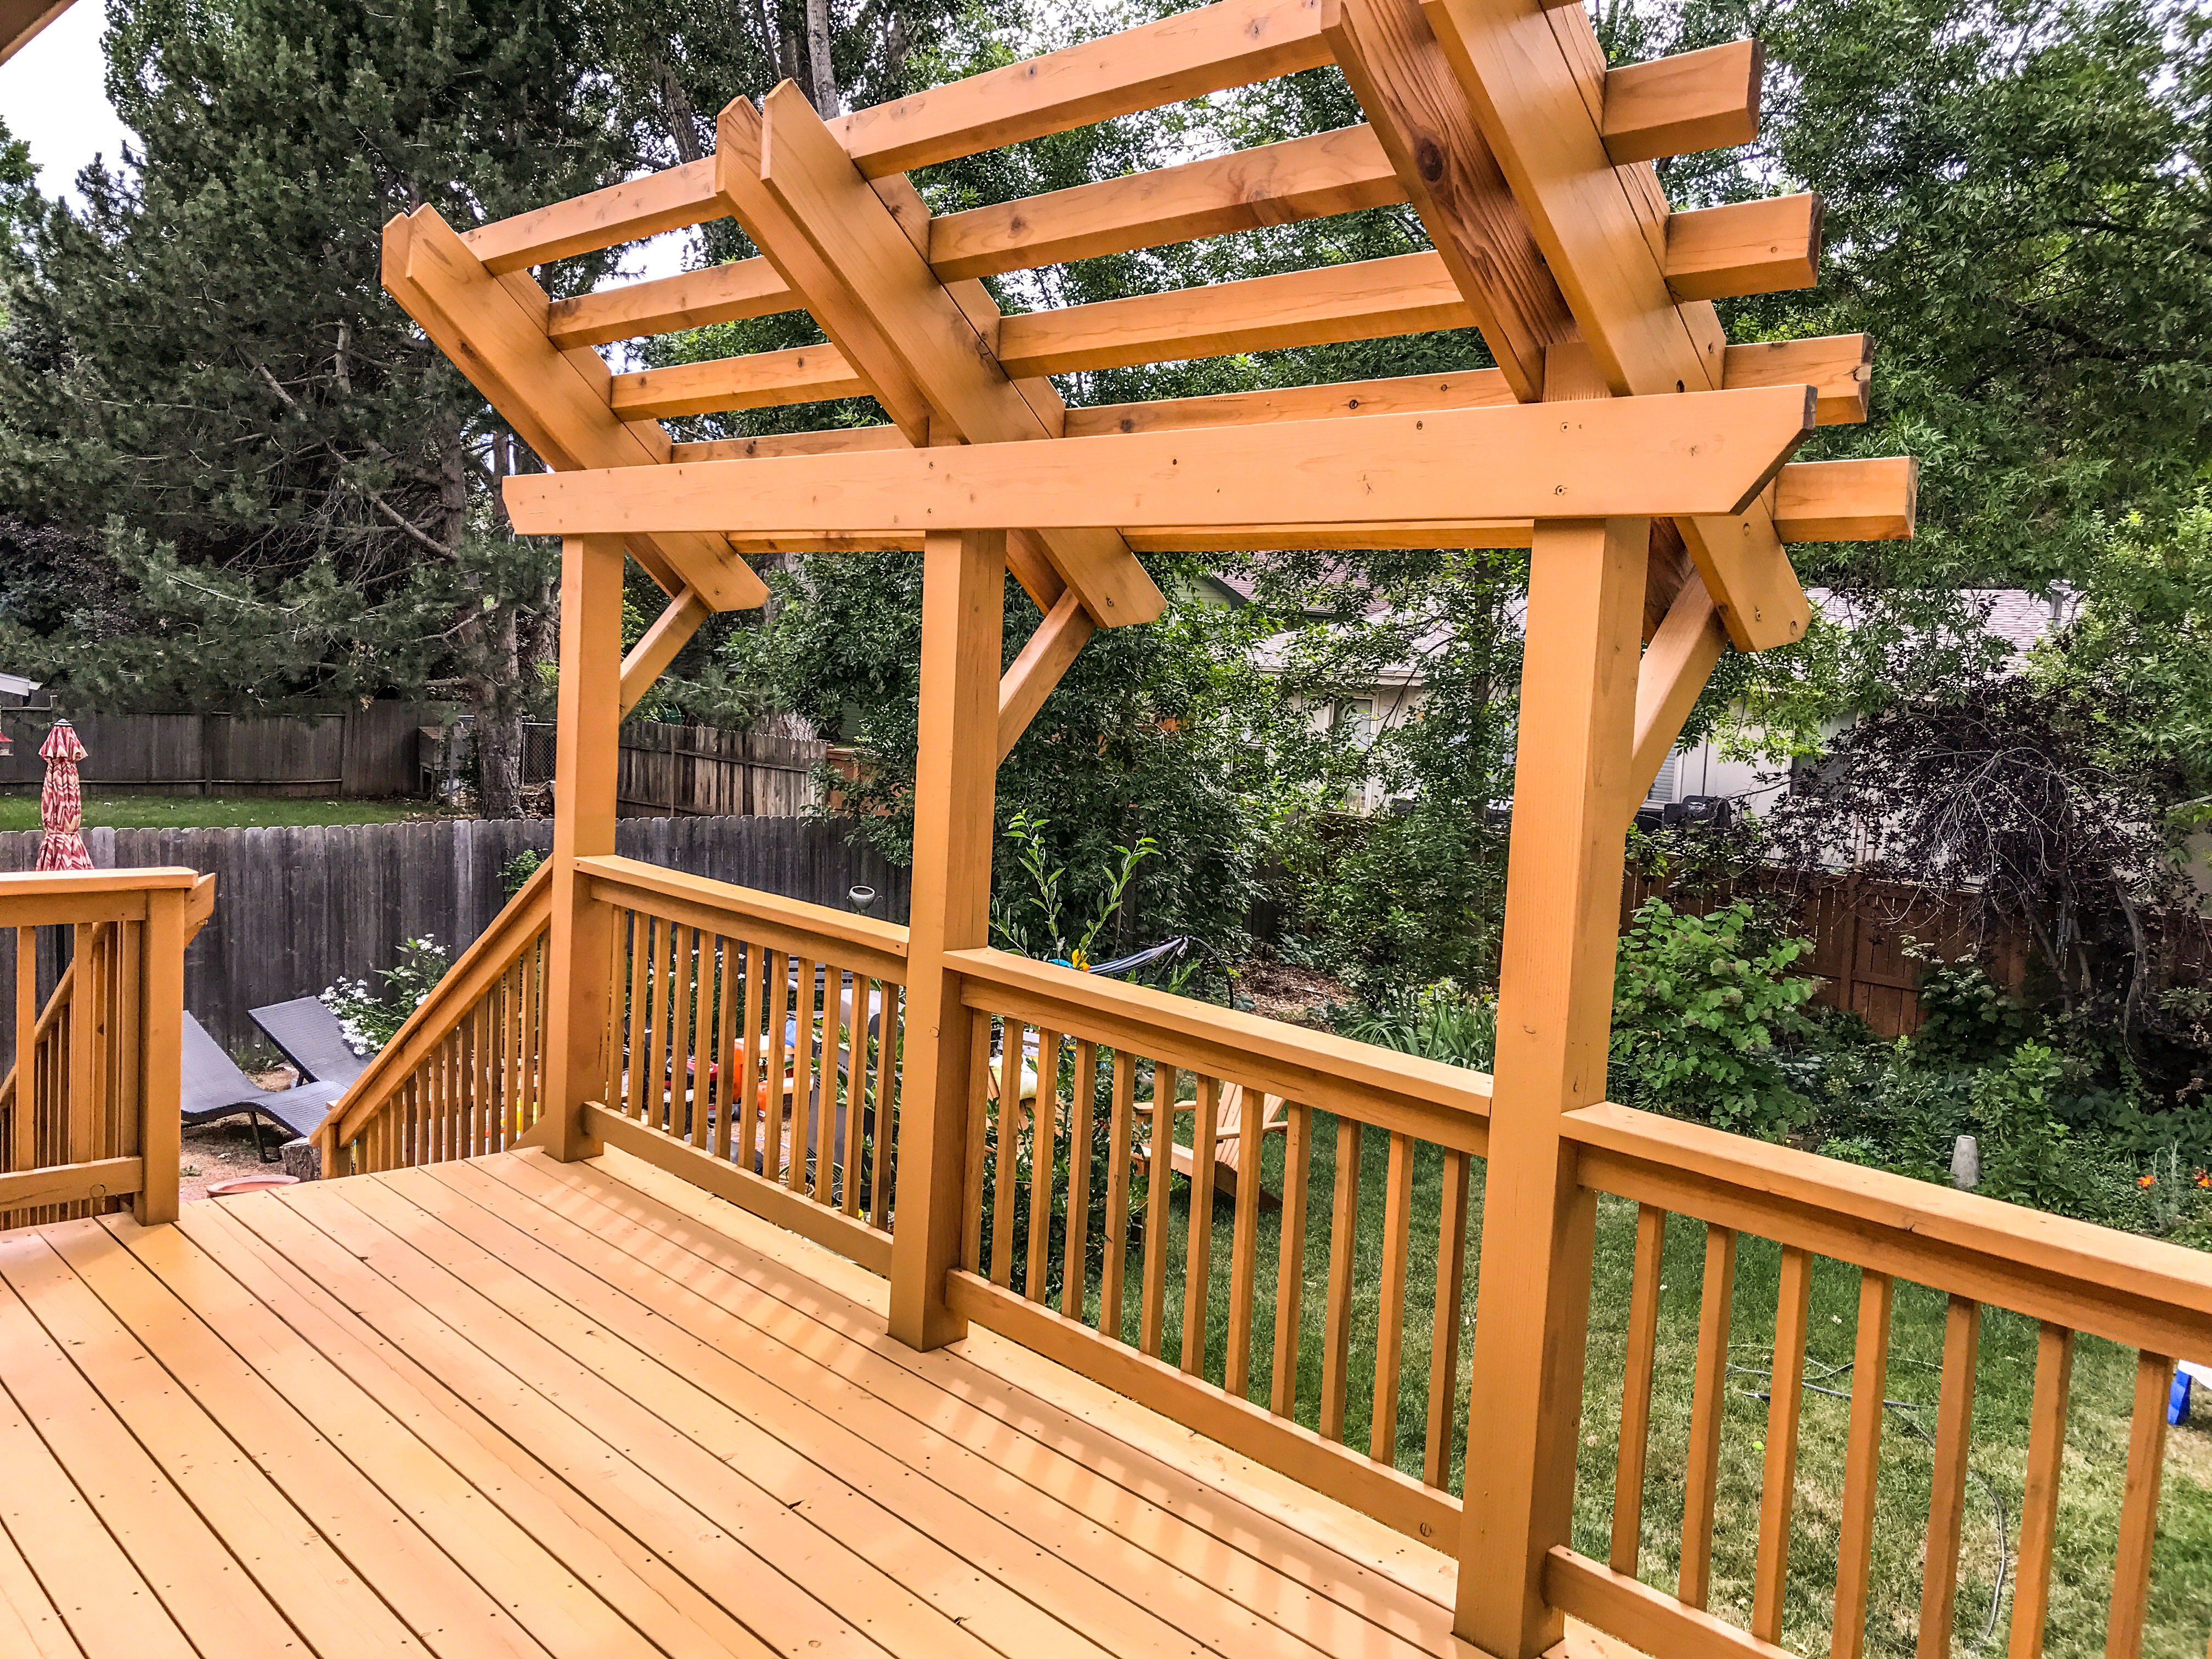 Staining Fences & Decks In Your Area